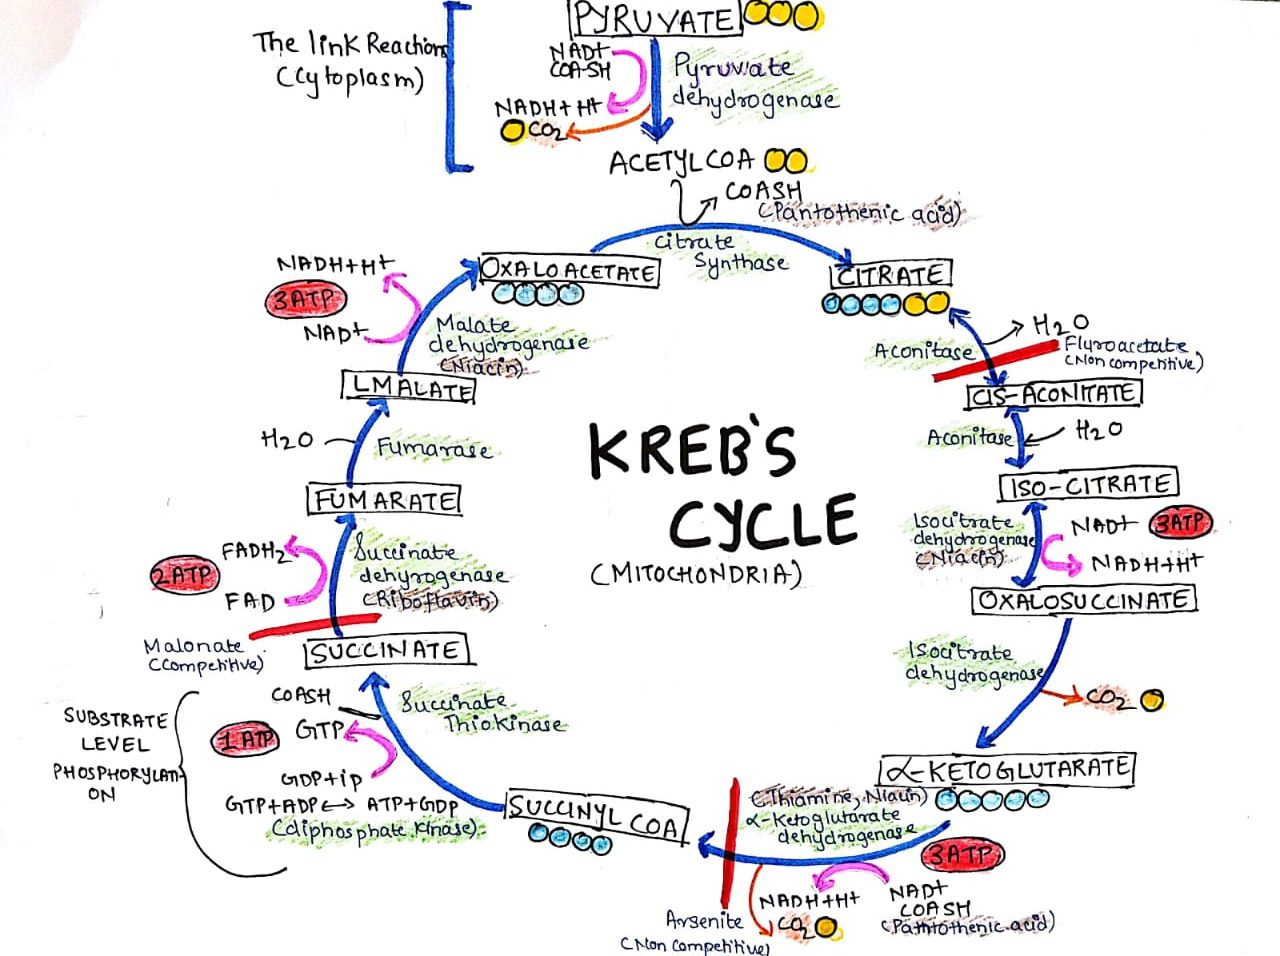 Tricarboxylic acid cycle (Kreb's Cycle)